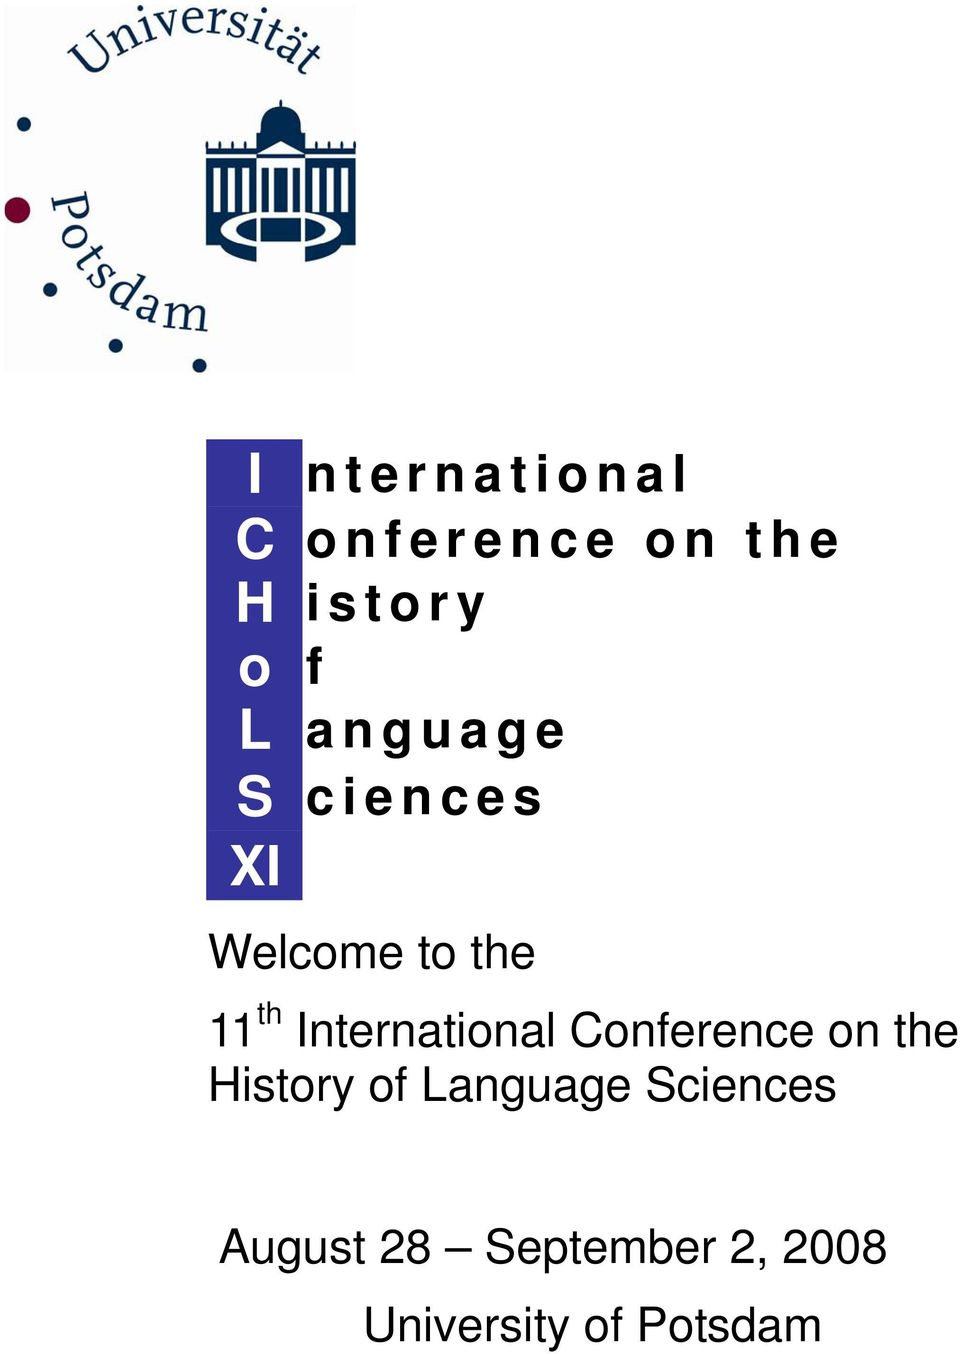 International Conference on the History of